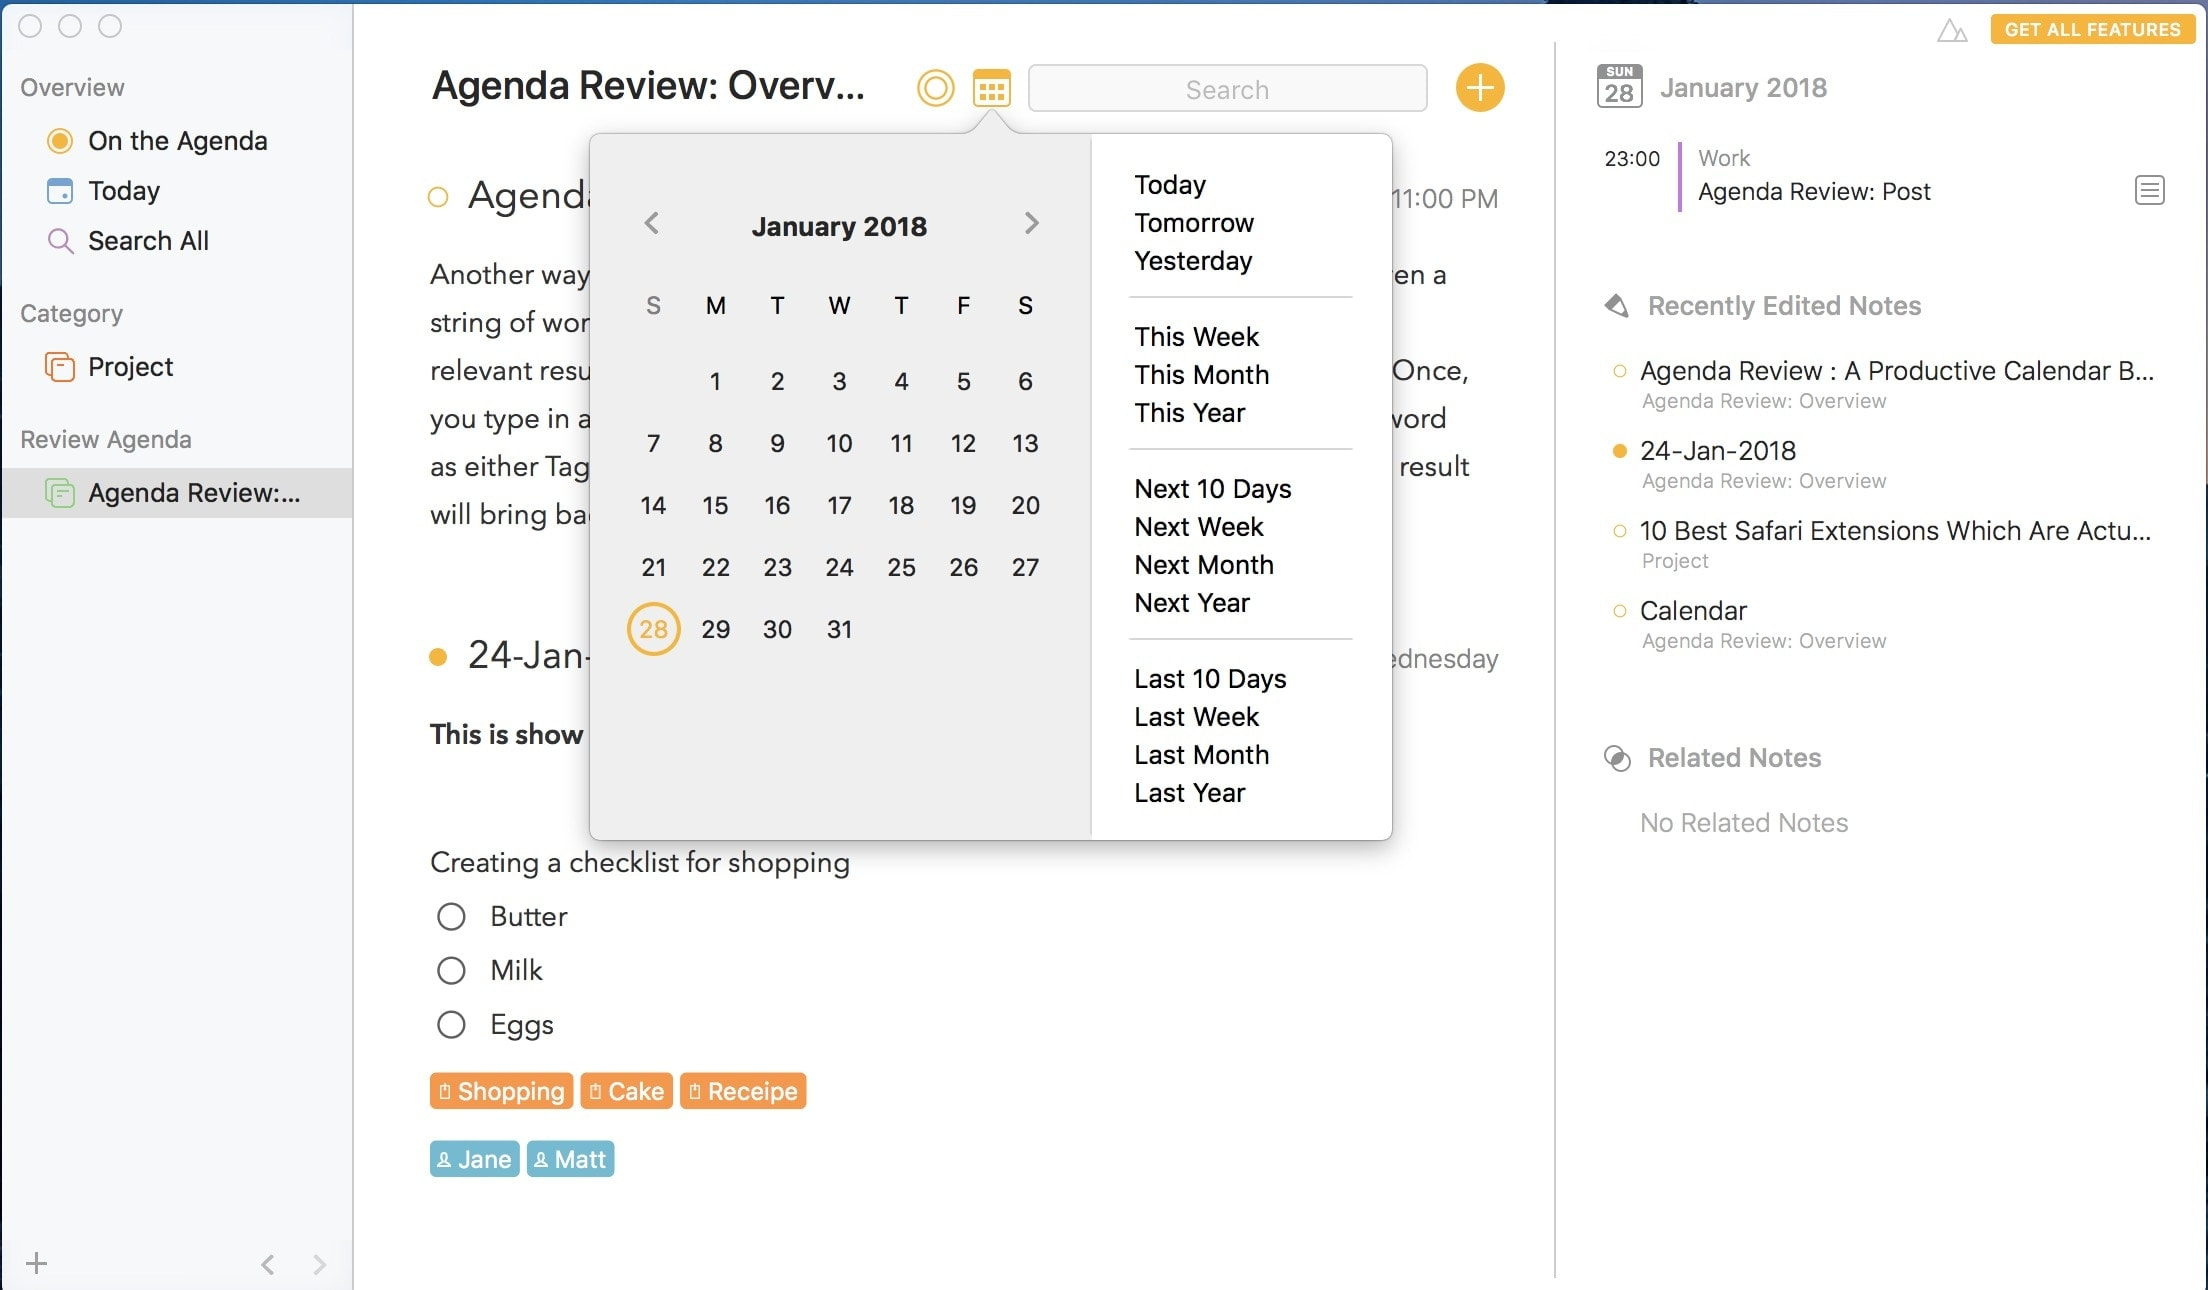 Agenda Review Search and Interlinking 3.jpg